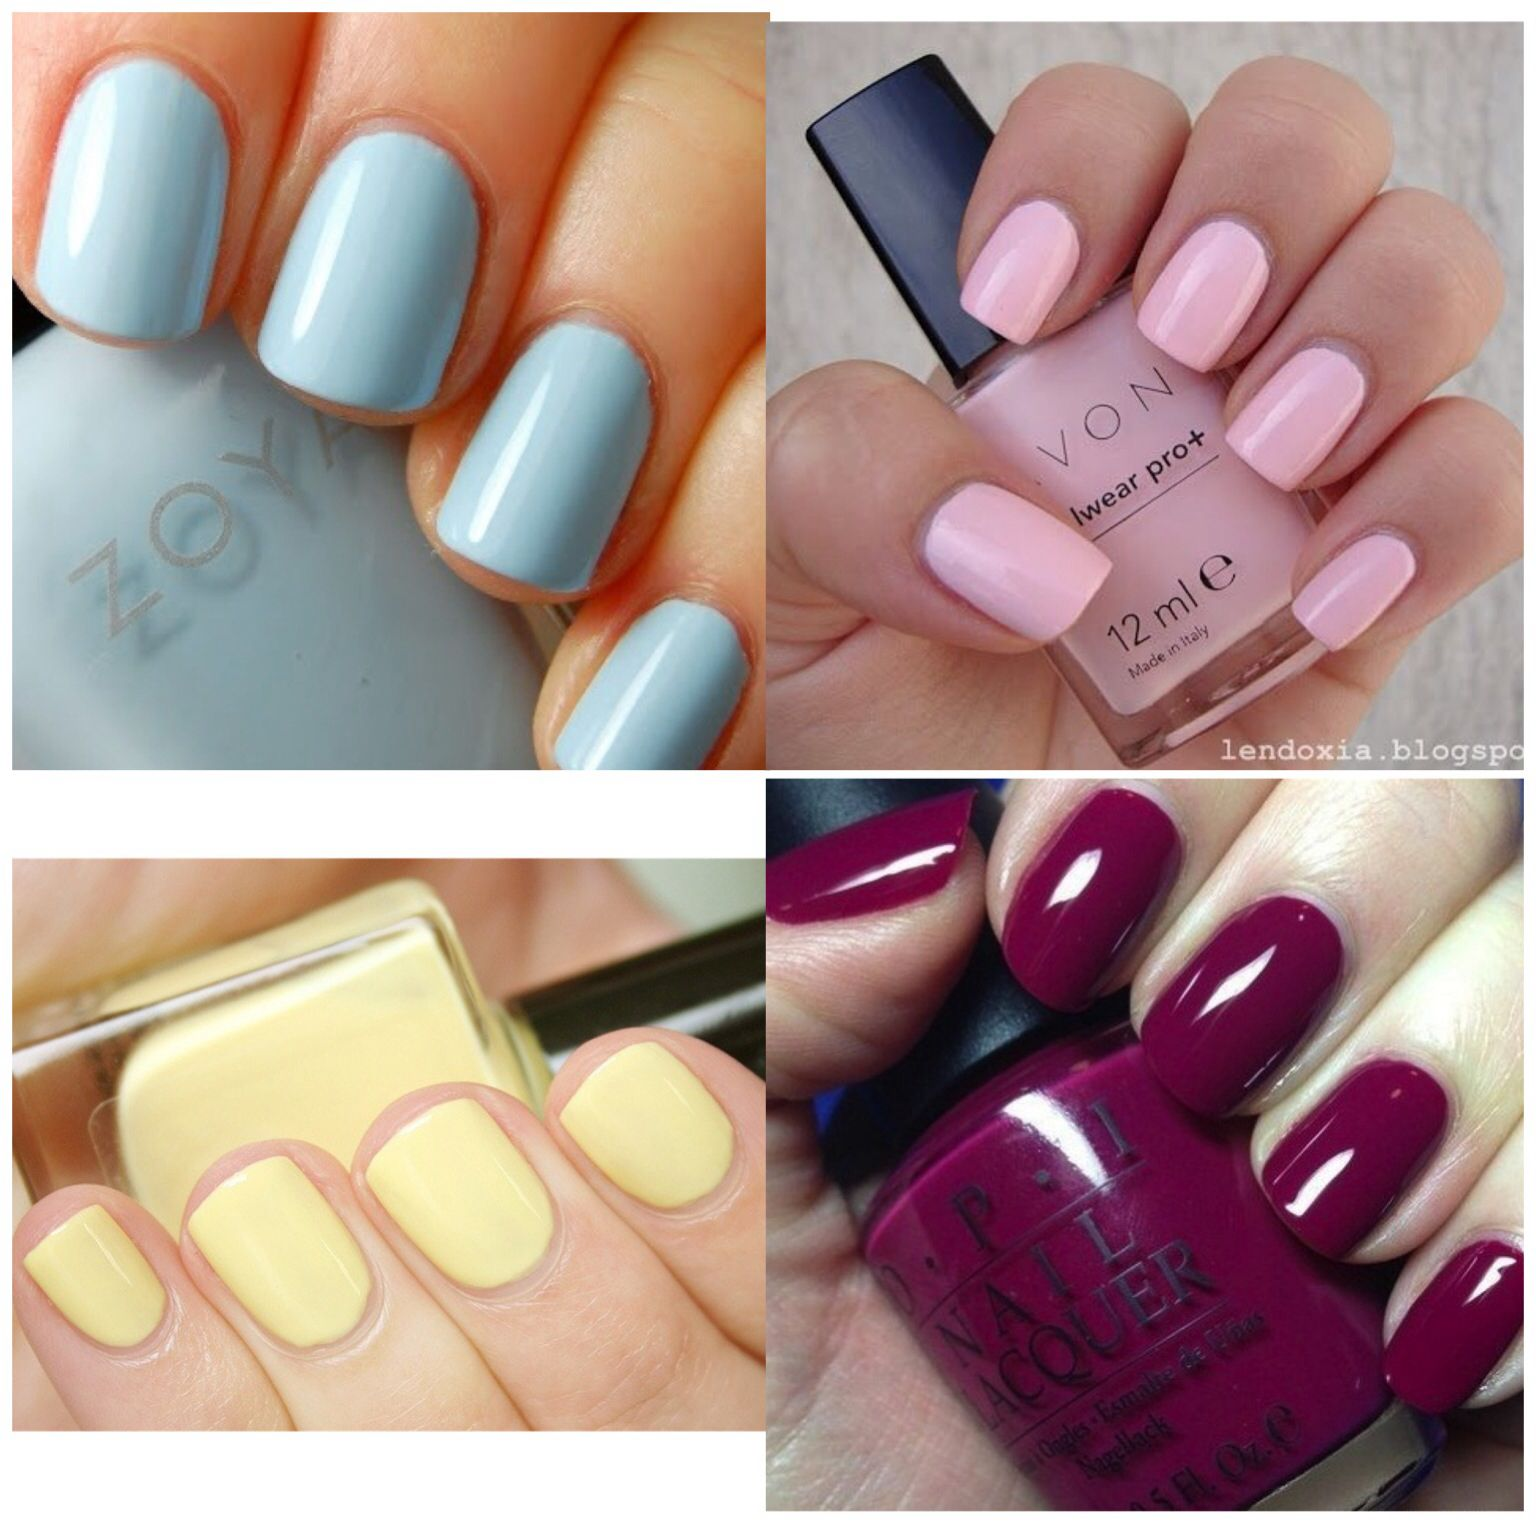 Winter - Spring - Summer - Fall solid color nails(; - Winter - Spring - Summer - Fall Solid Color Nails(; Naails